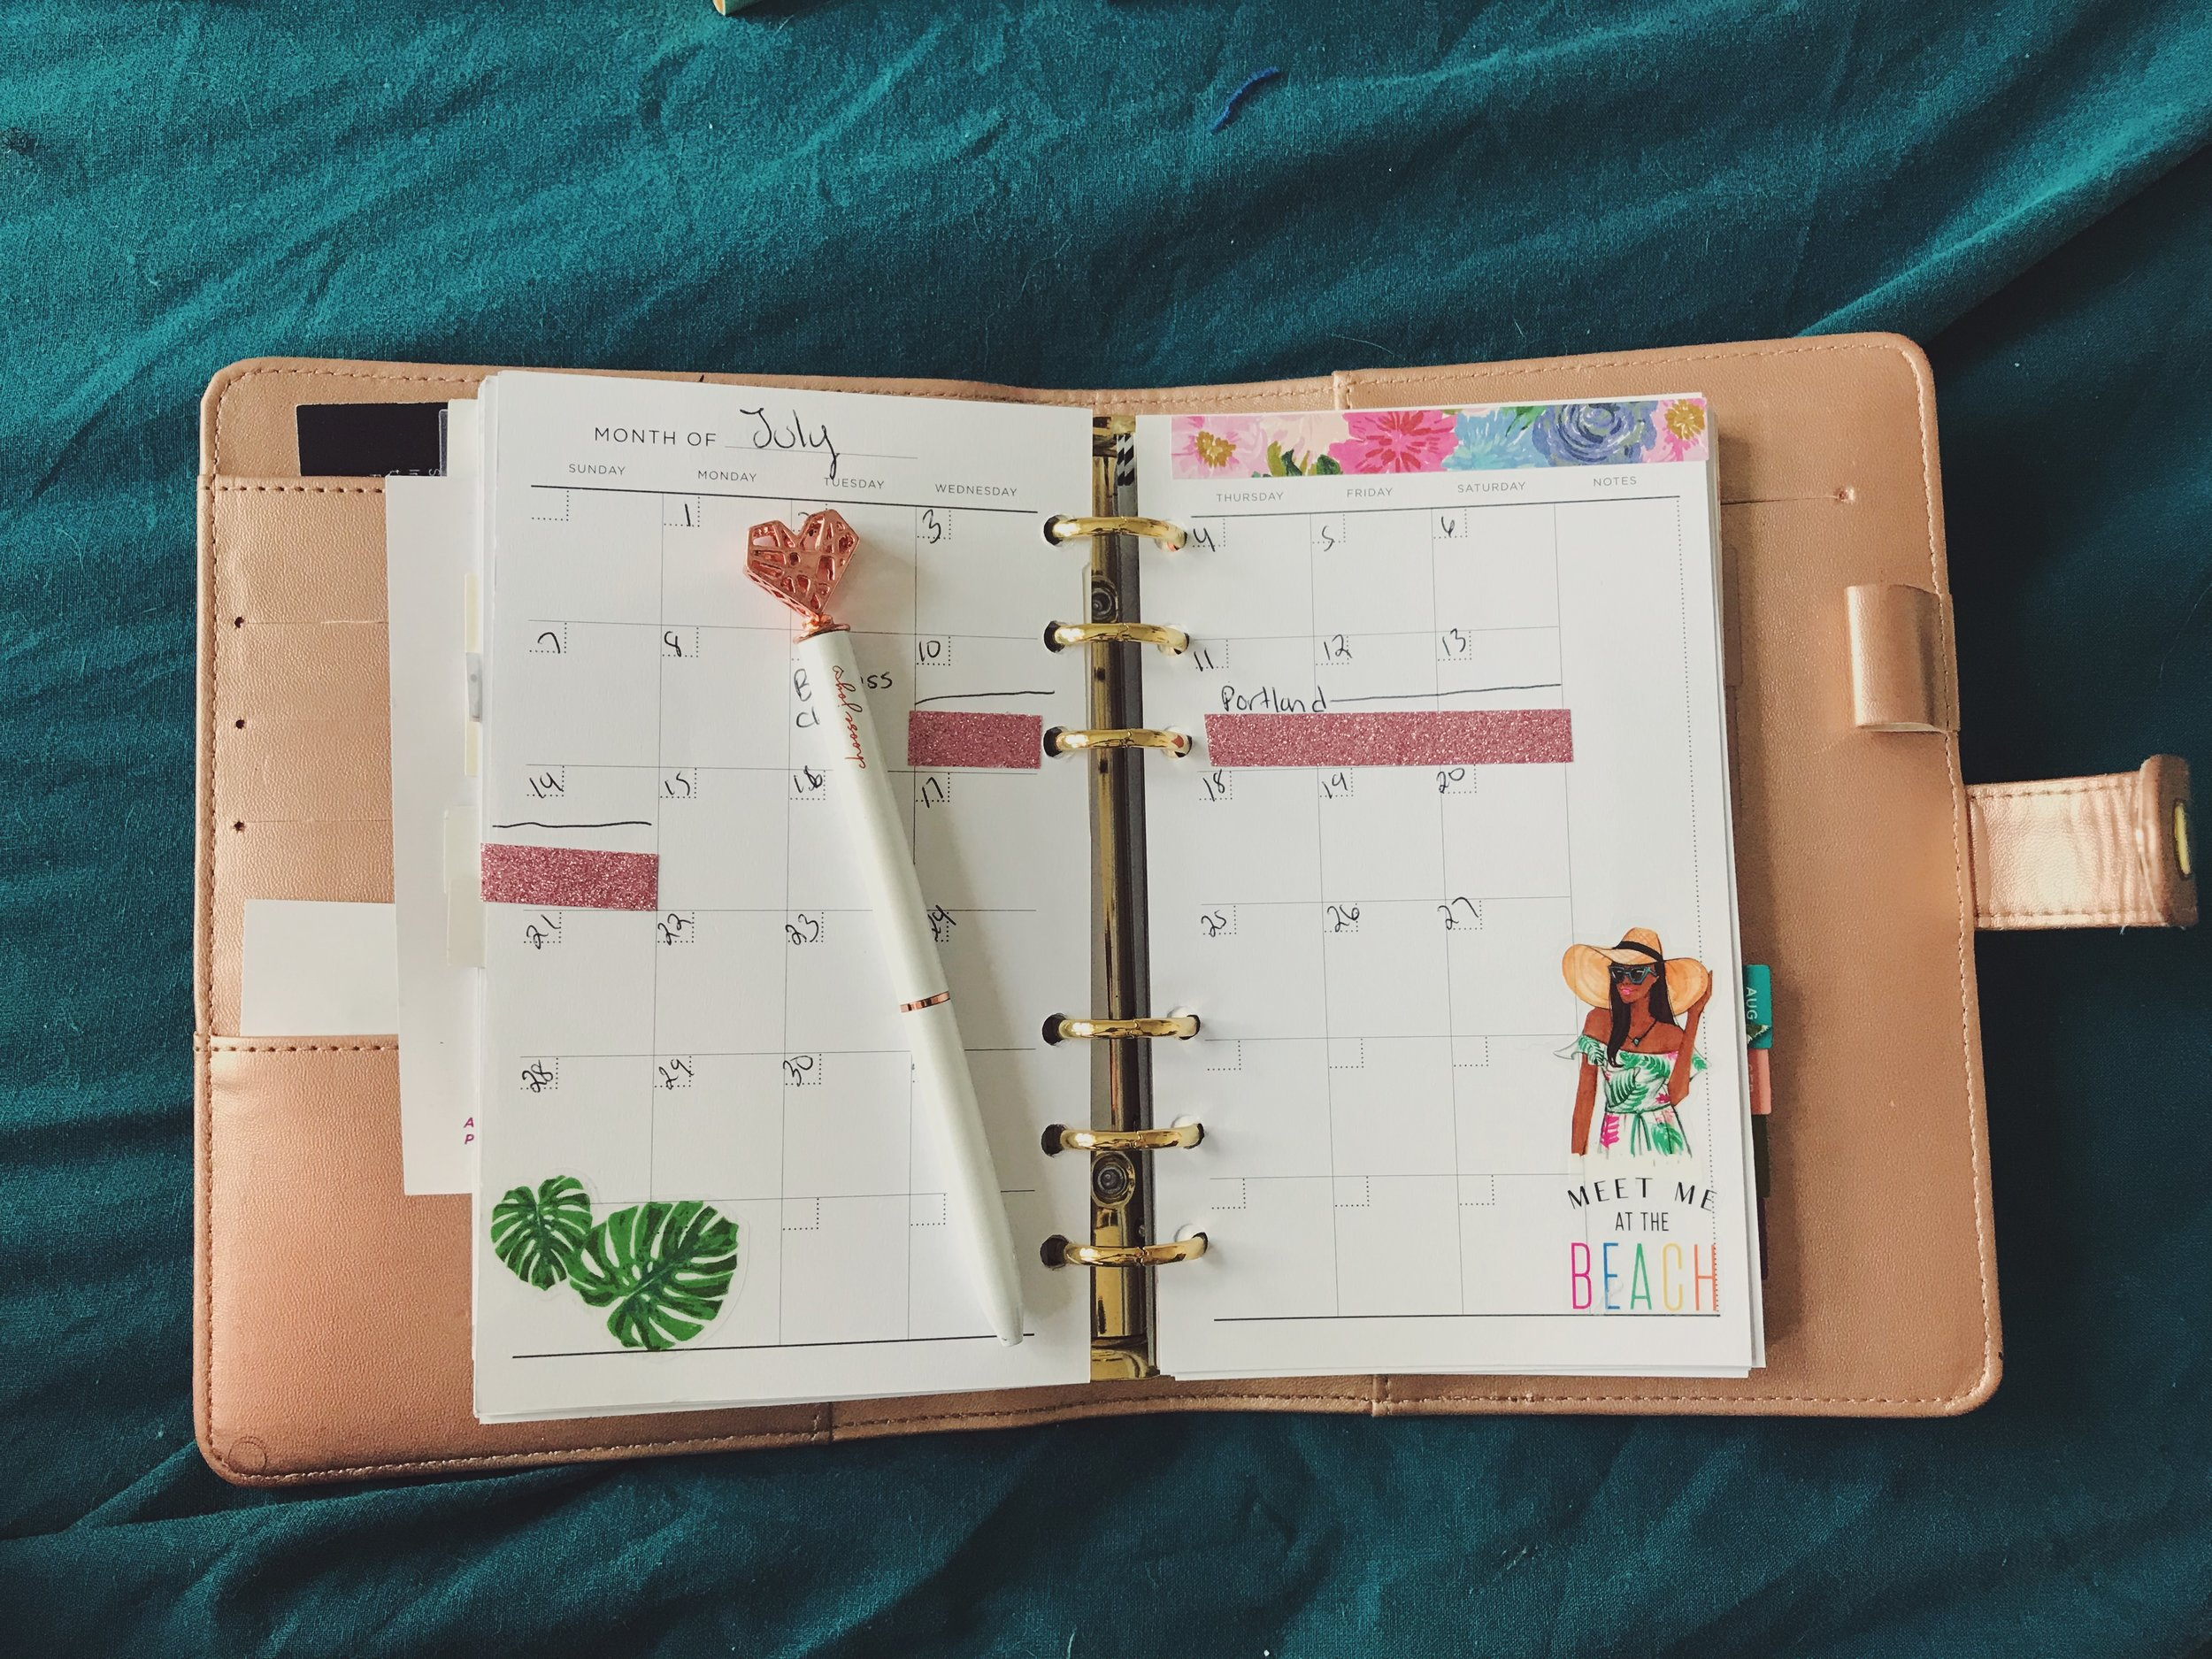 Decorative washi tape and stickers helps the pages come alive.